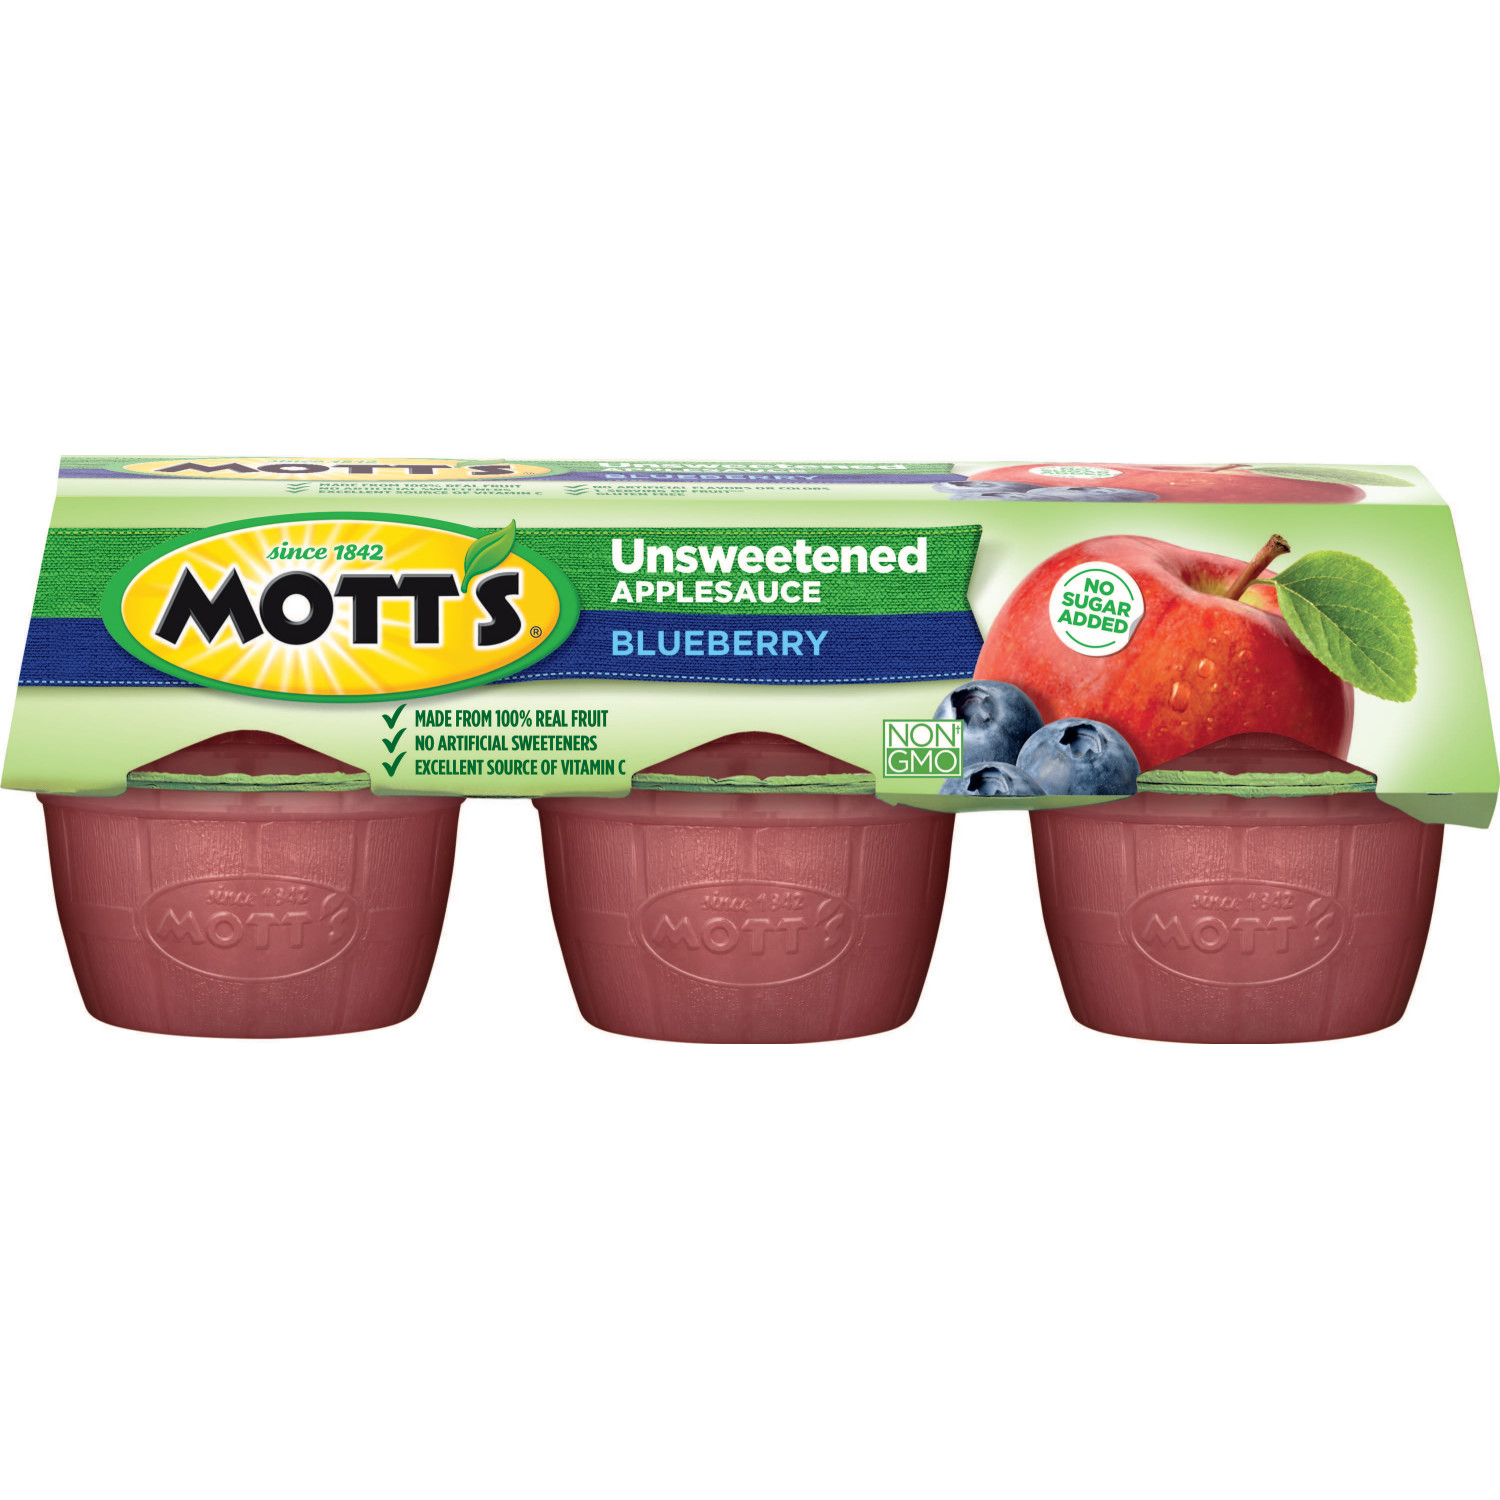 Mott's Unsweetened Applesauce Cups, Blueberry, 3.9 Oz, 6 Count